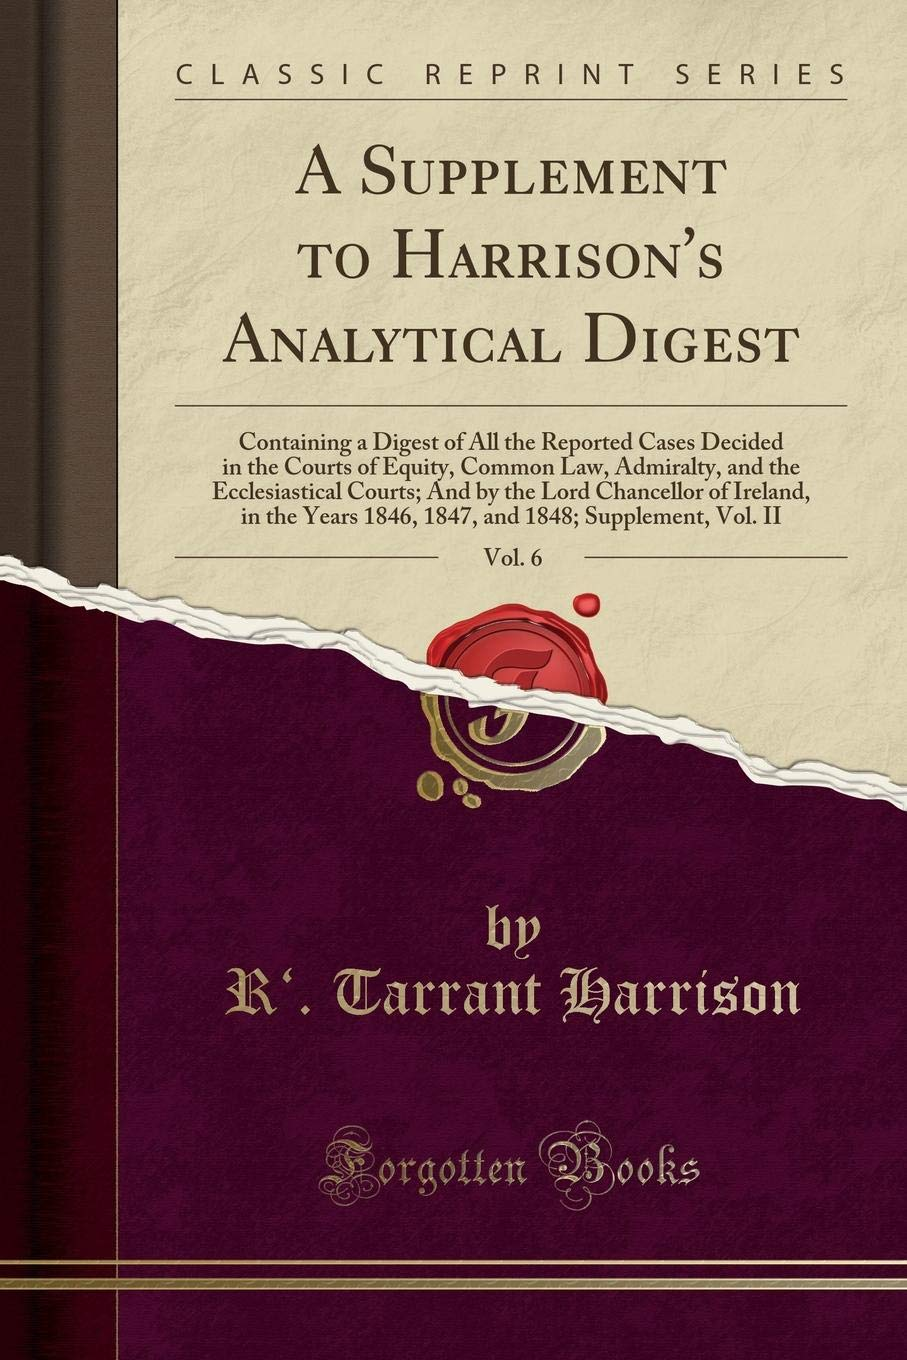 A Supplement to Harrison's Analytical Digest, Vol. 6: Containing a Digest of All the Reported Cases Decided in the Courts of Equity, Common Law, ... of Ireland, in the Years 1846, 1847, and Text fb2 ebook